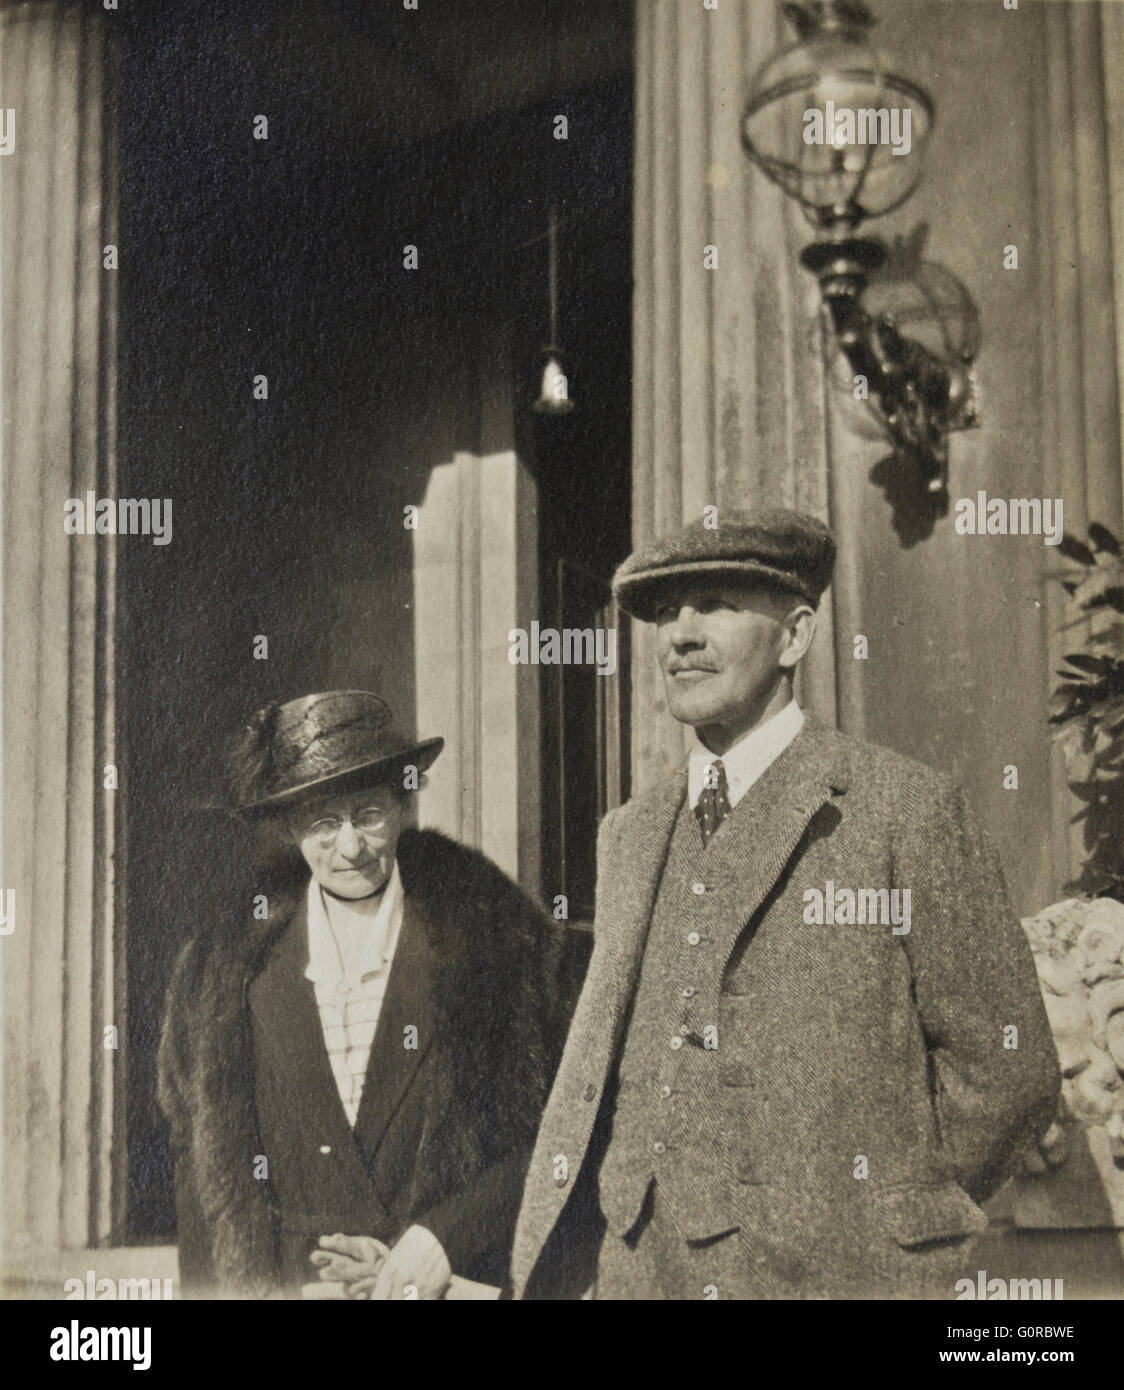 Historical Black and White Photograph man and woman - Stock Image